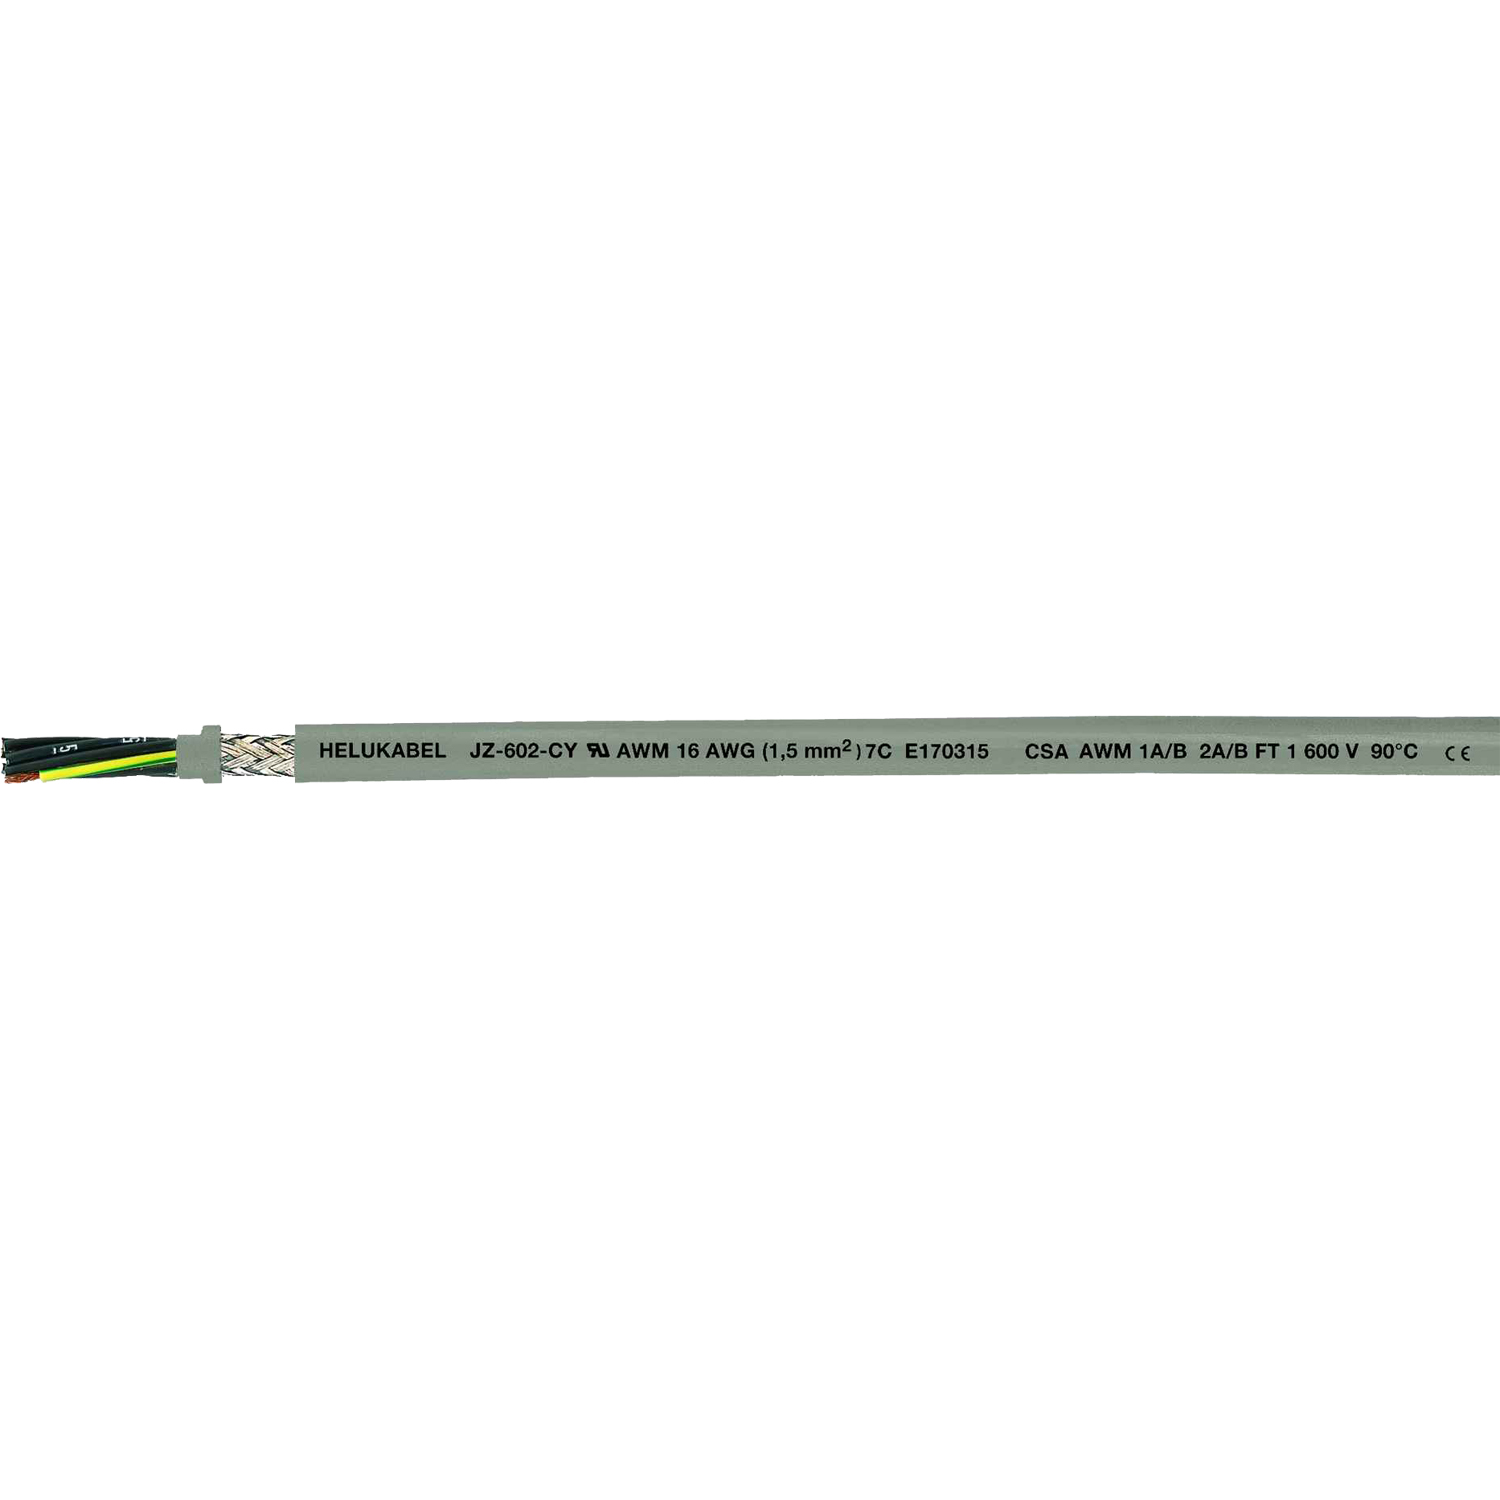 Control Cable PVC screened UL CSA JZ 602 CY